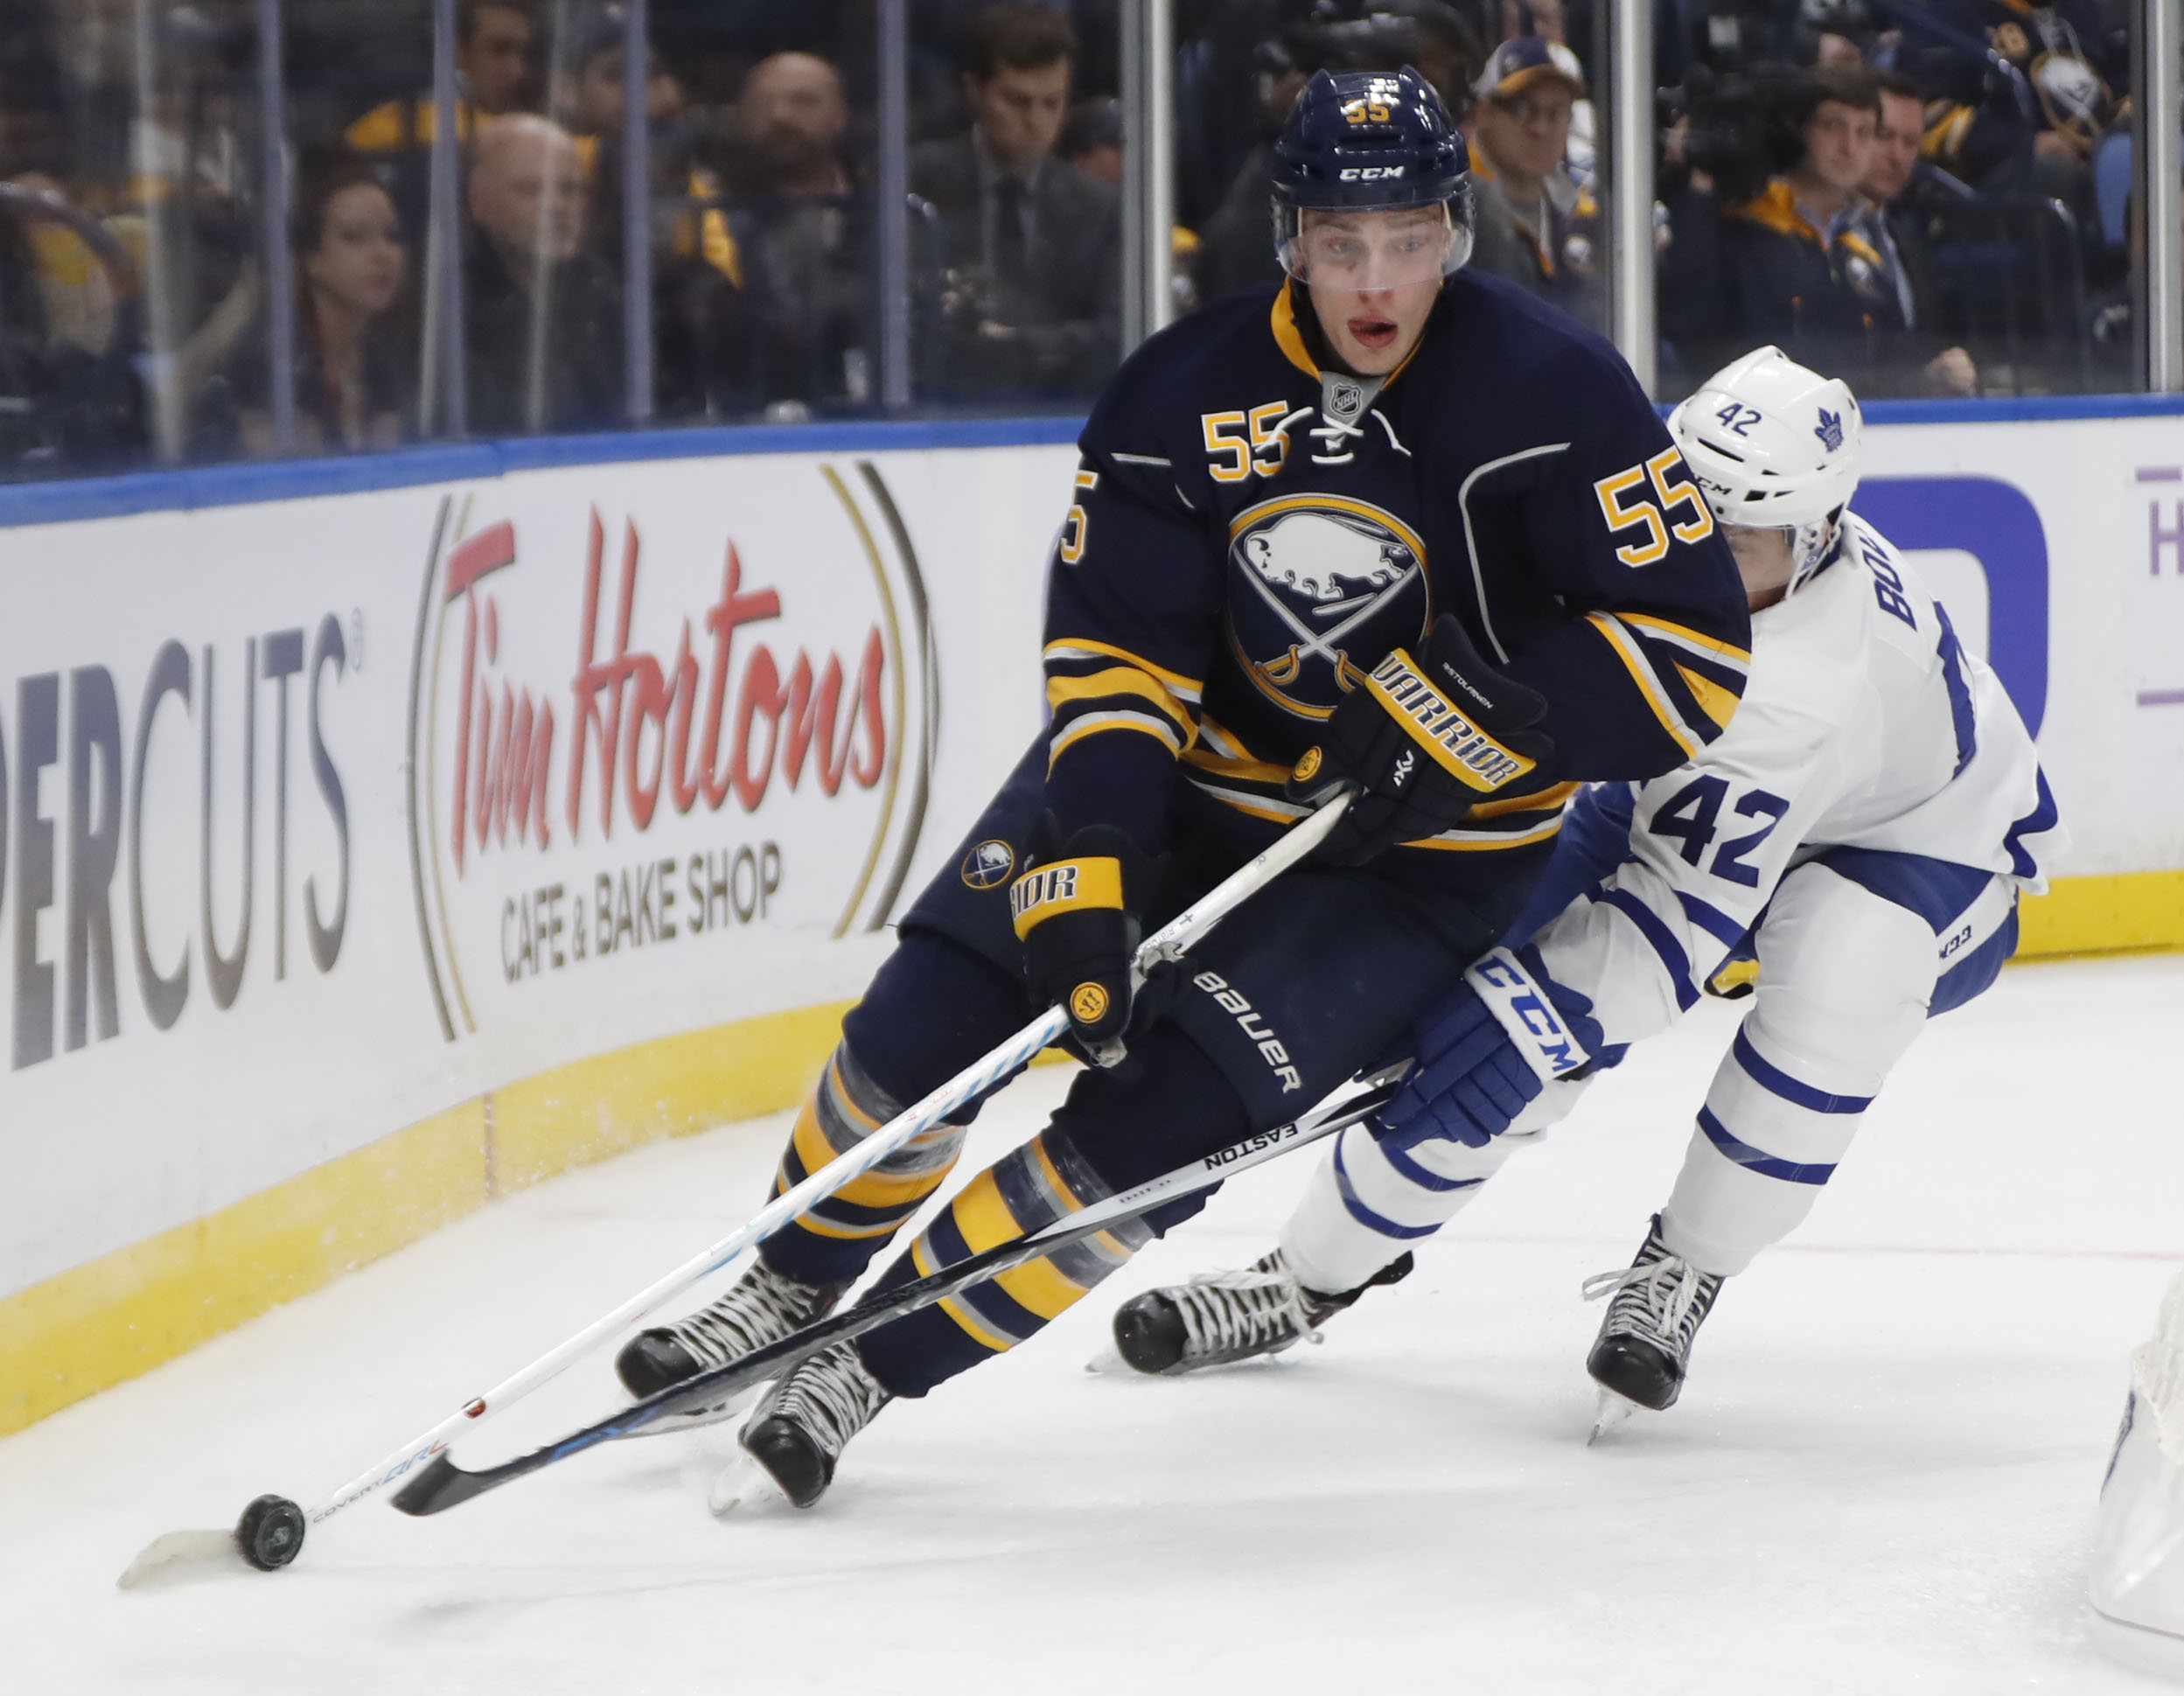 Rasmus Ristolainen leads the Sabres in assists, but no defenseman has scored yet. (Harry Scull Jr./Buffalo News)